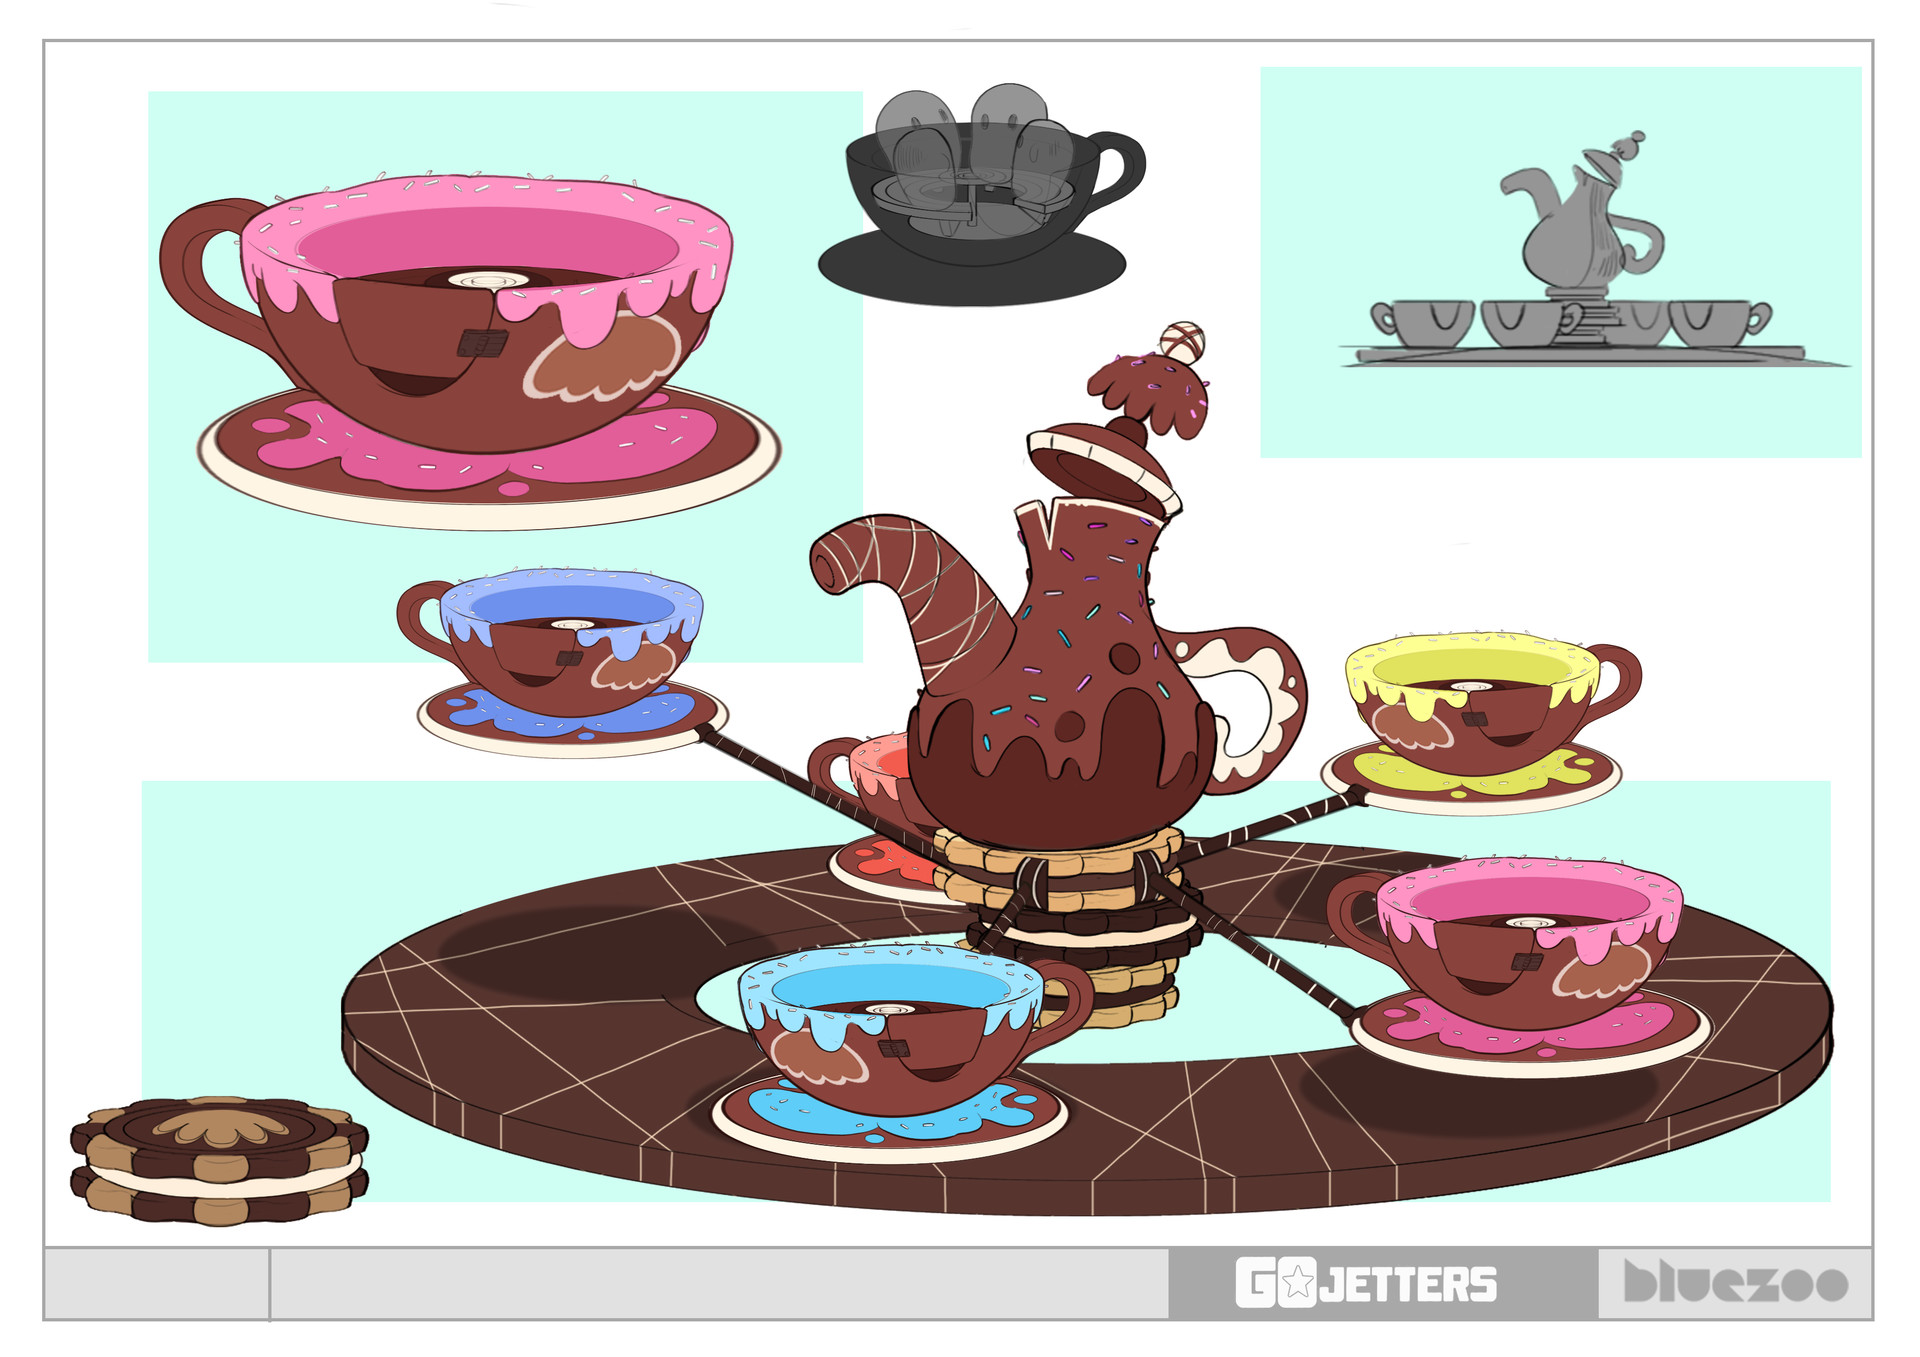 Francesco mazza chocolate teacup carousel v01